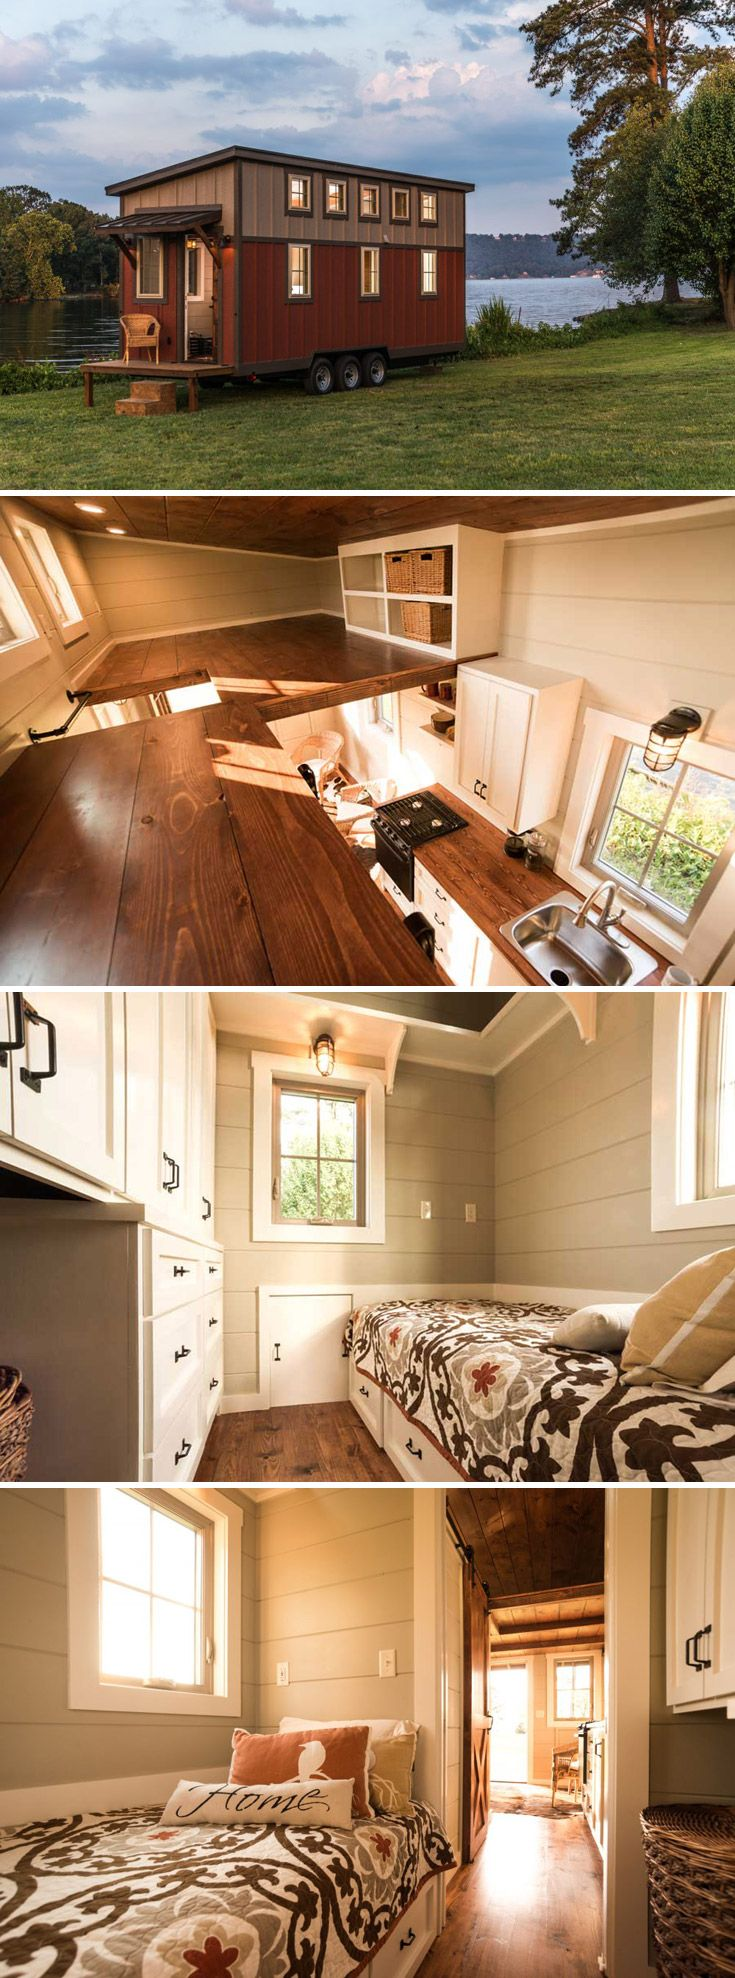 20 best ideas about tiny house office on pinterest mini for 2 bedroom tiny house